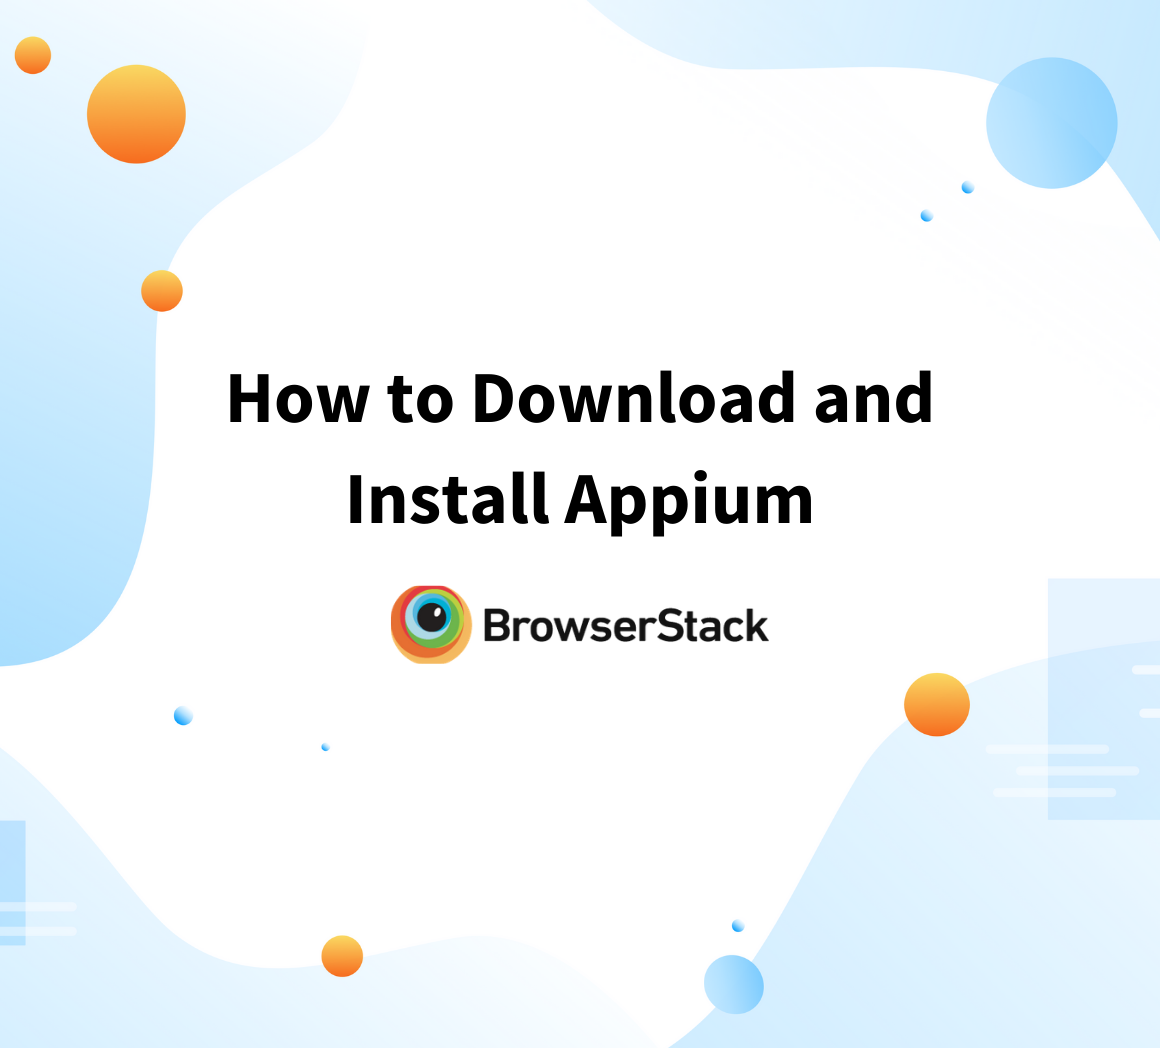 How to Download and Install Appium